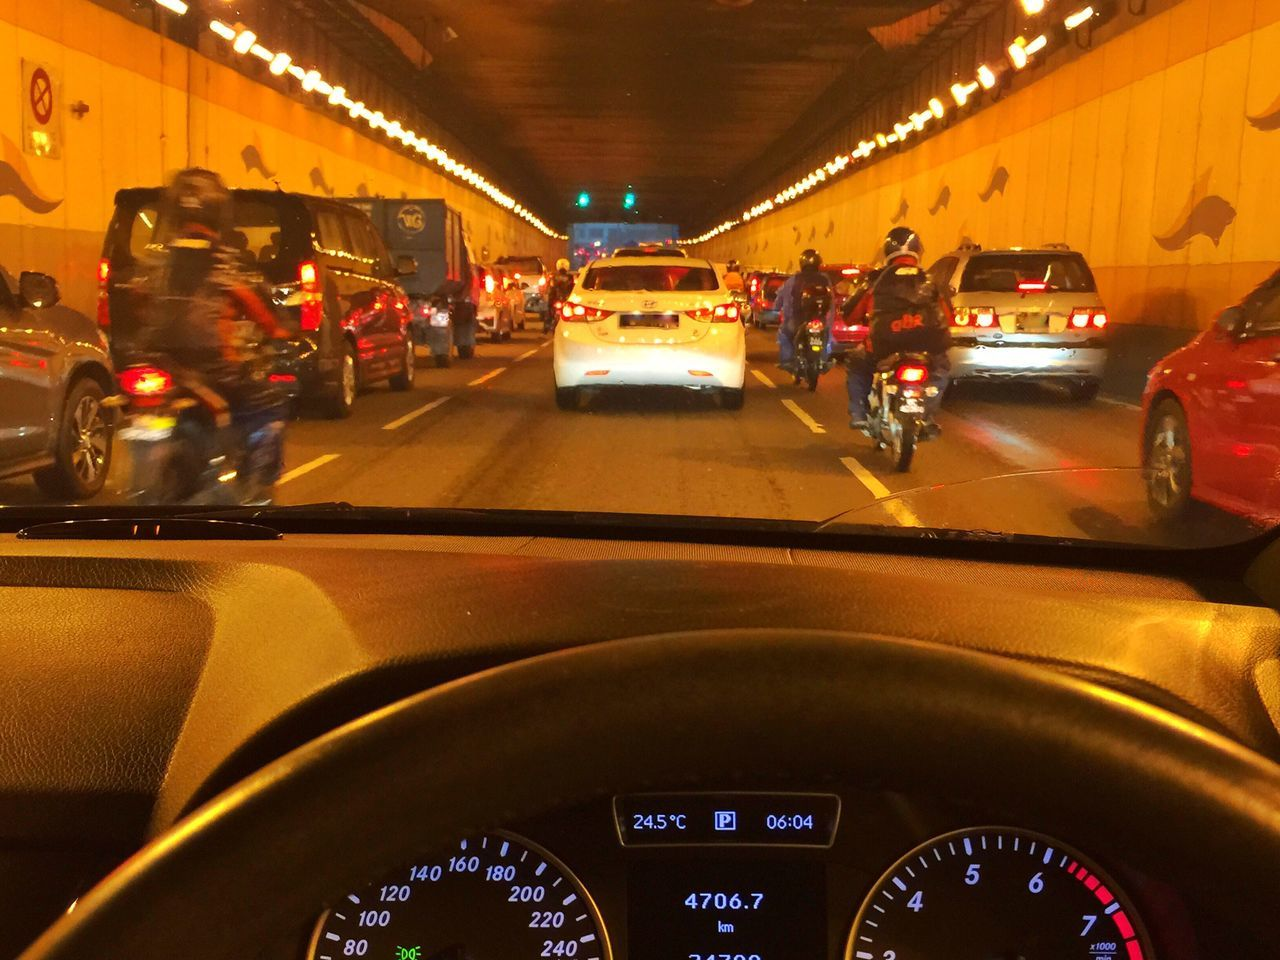 Inside Car View Kuala Lumpur City Center Taking Photos Relax The Photojournalist – 2016 EyeEm Awards Tunnel Road Traffic Jam. Patience Meter No People Car My Commute Need For Speed